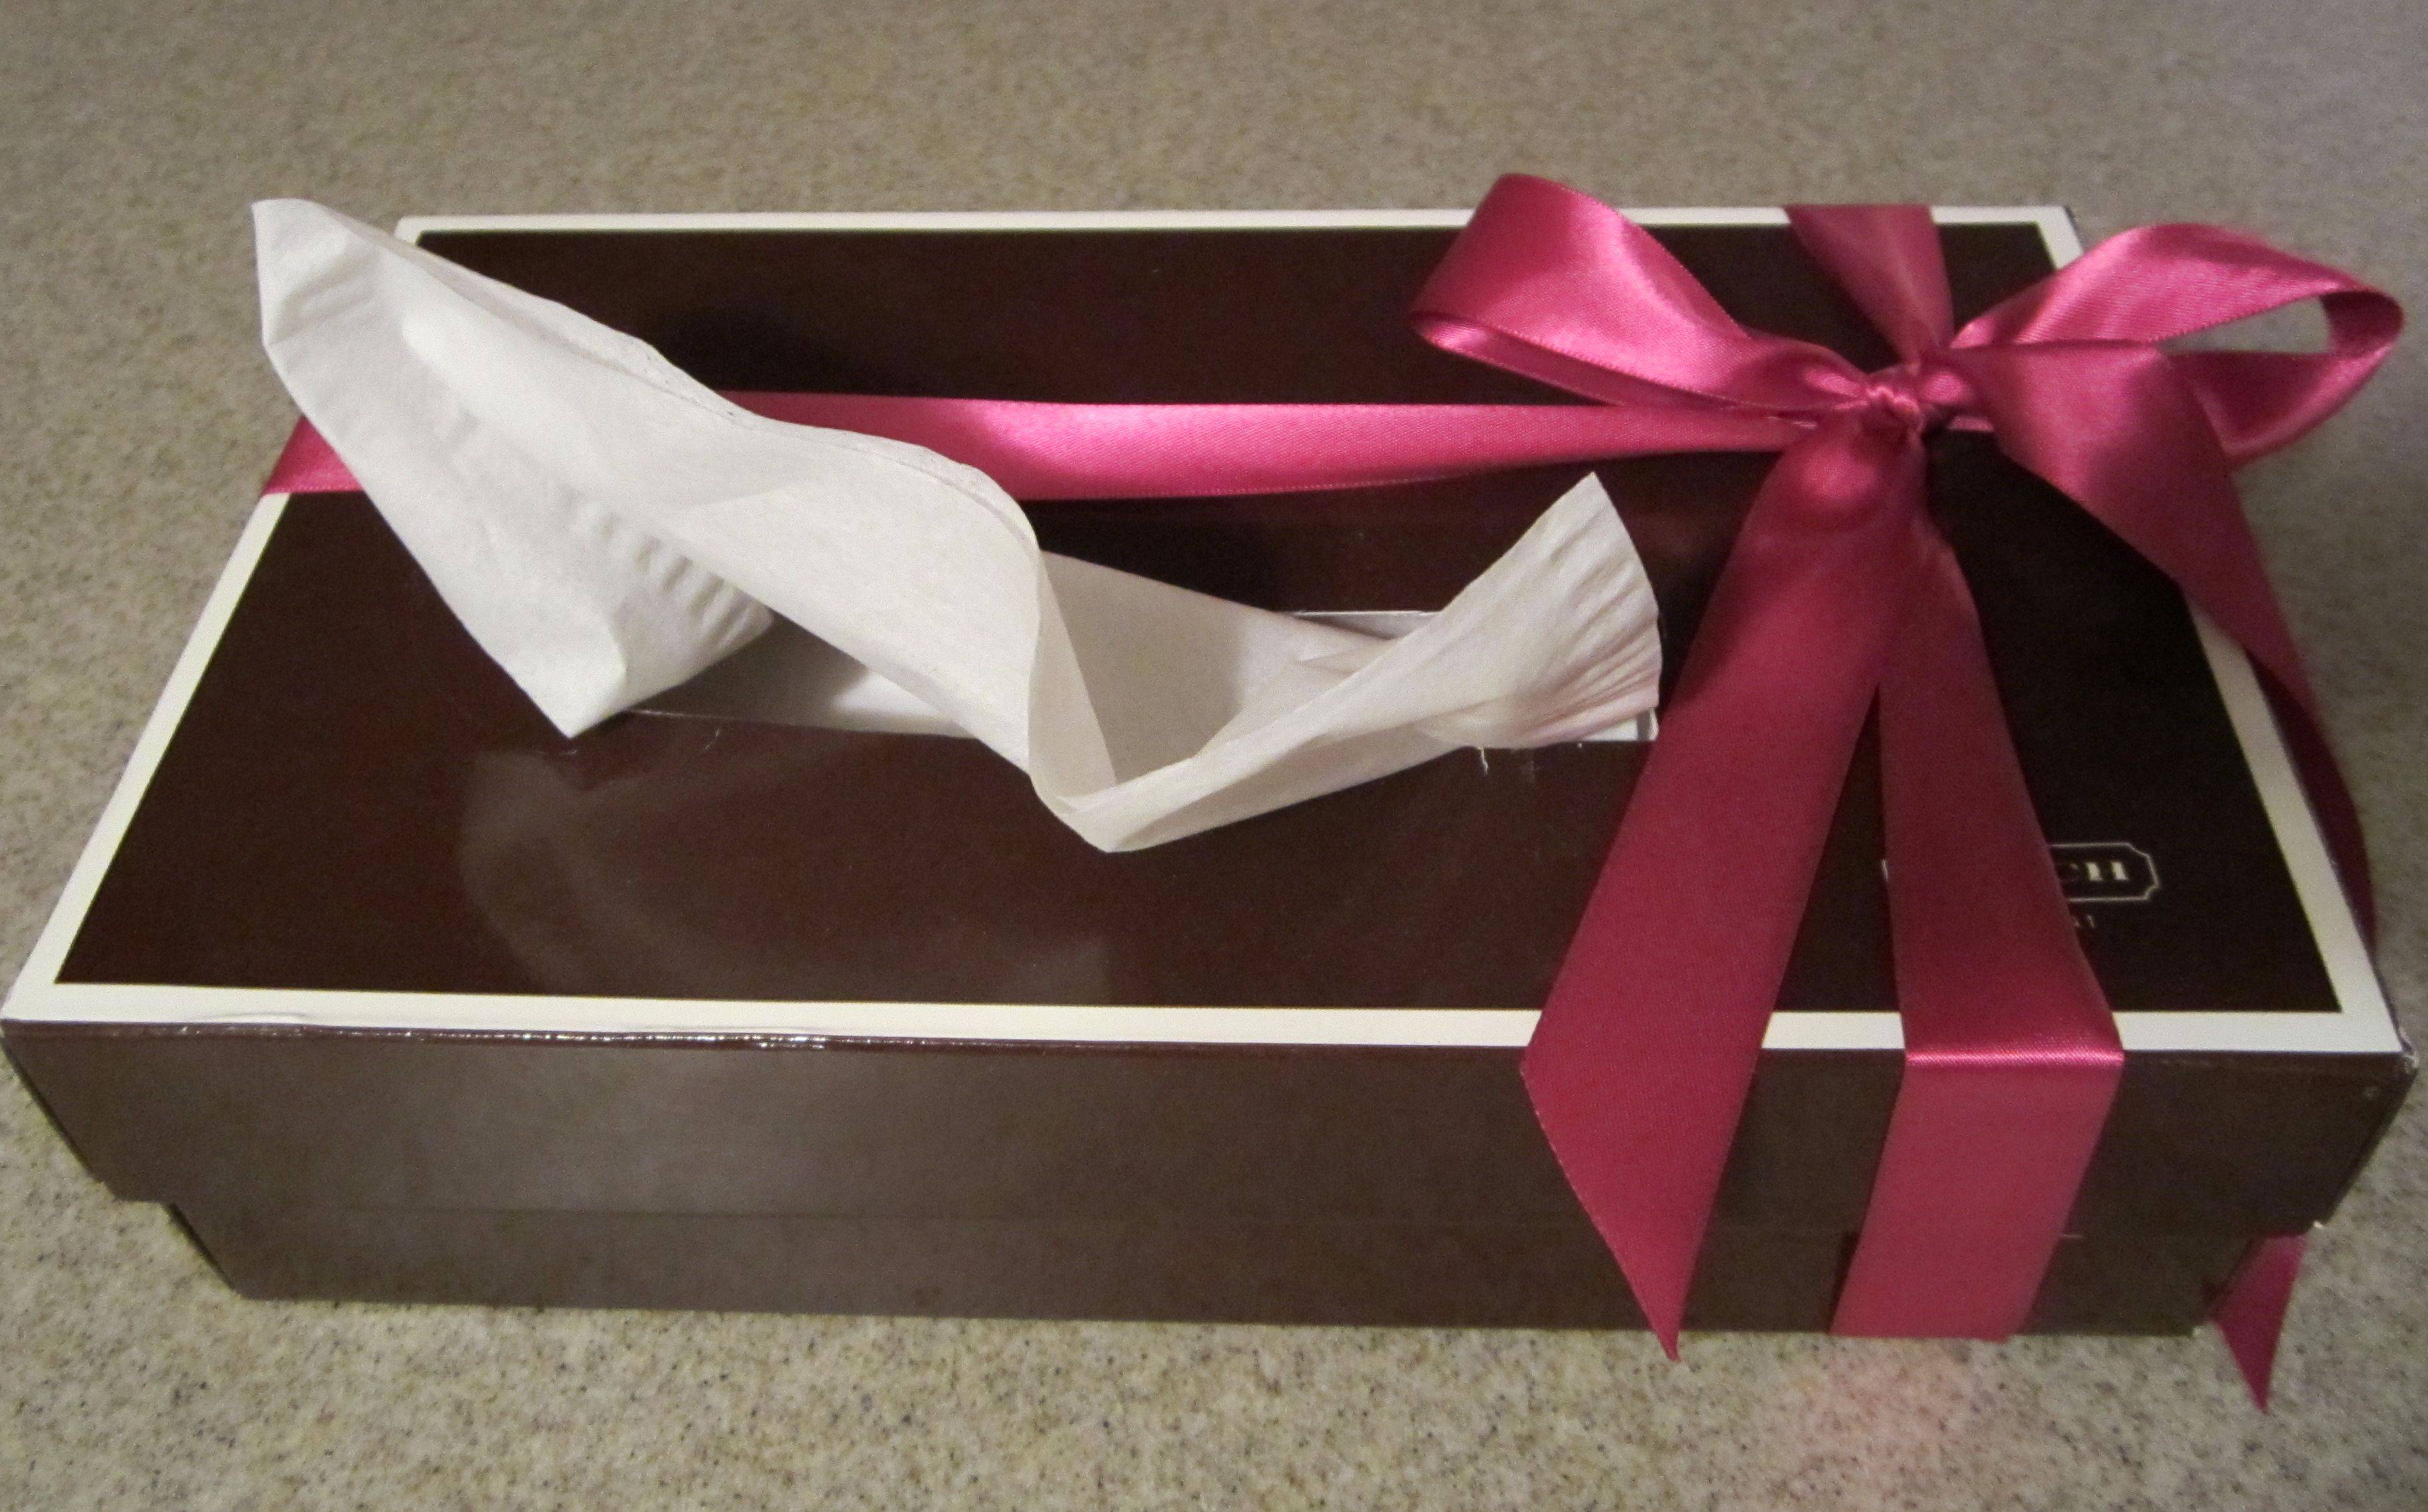 Turn designer gift boxes into fancy tissue boxes! (doubt I will, but cute idea; how about a red Macy's box?)